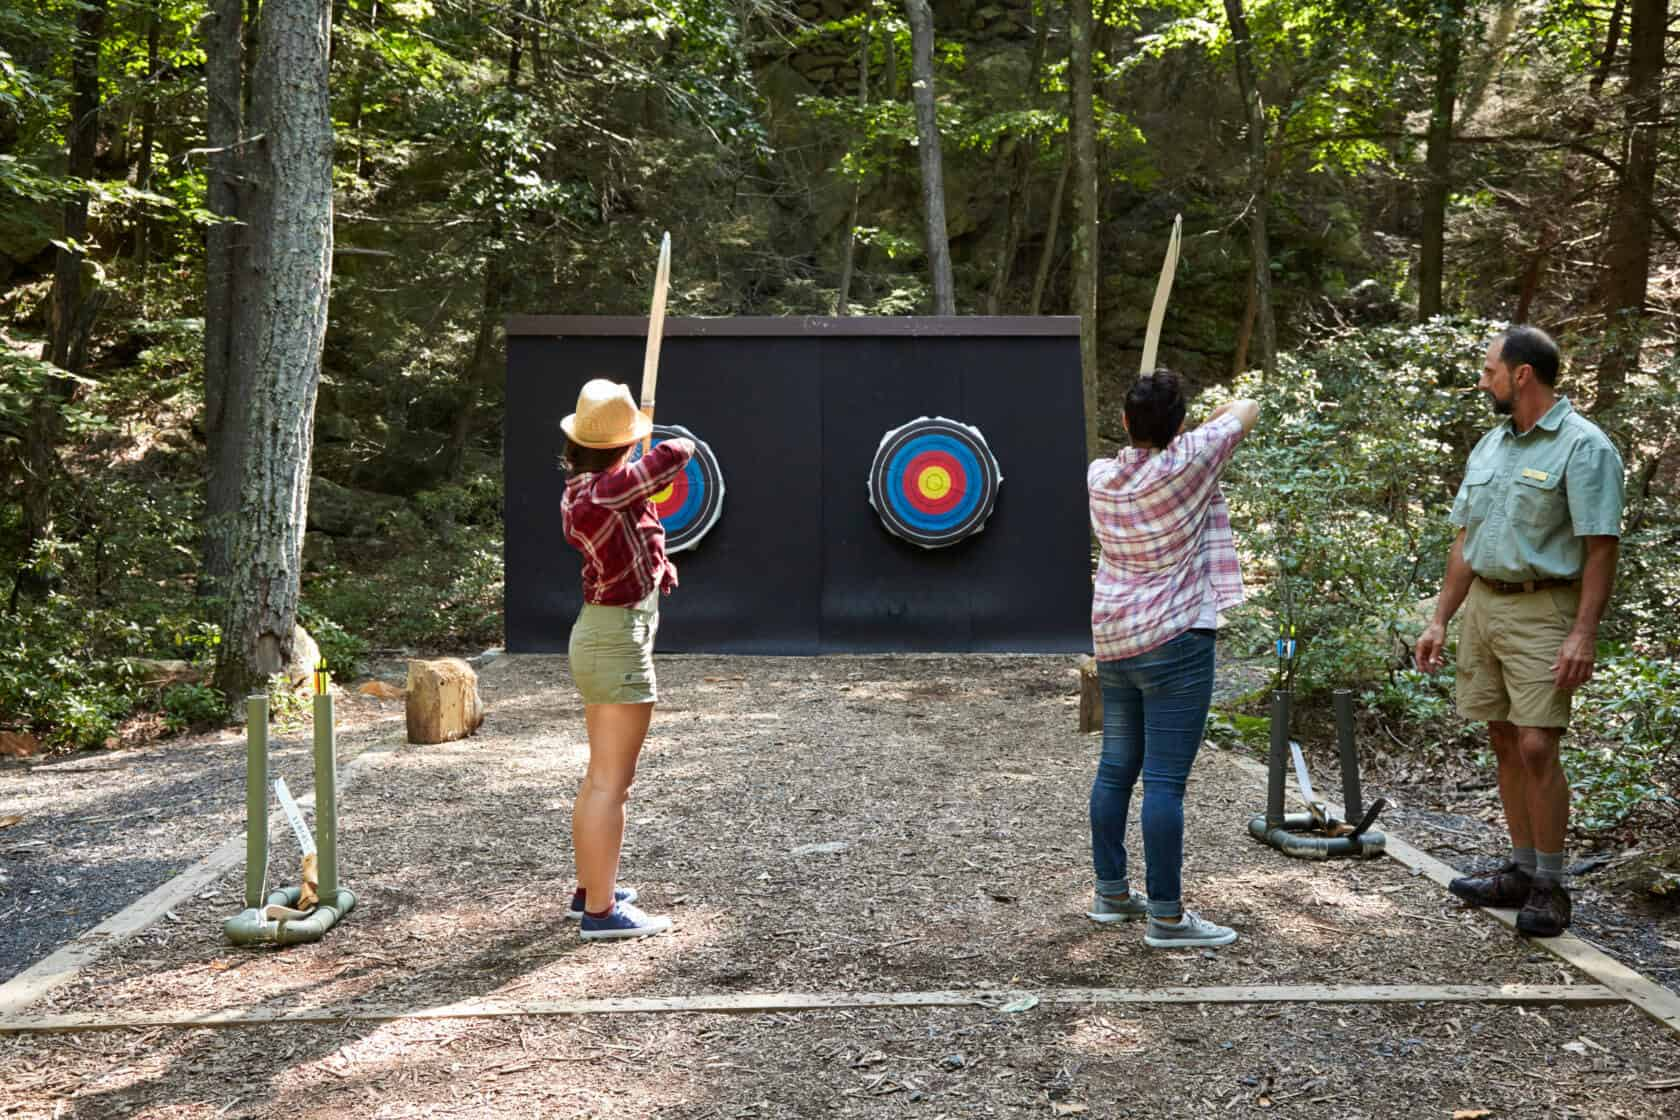 Archery - Outdoor Activities - Hudson Valley Getaway - Mohonk